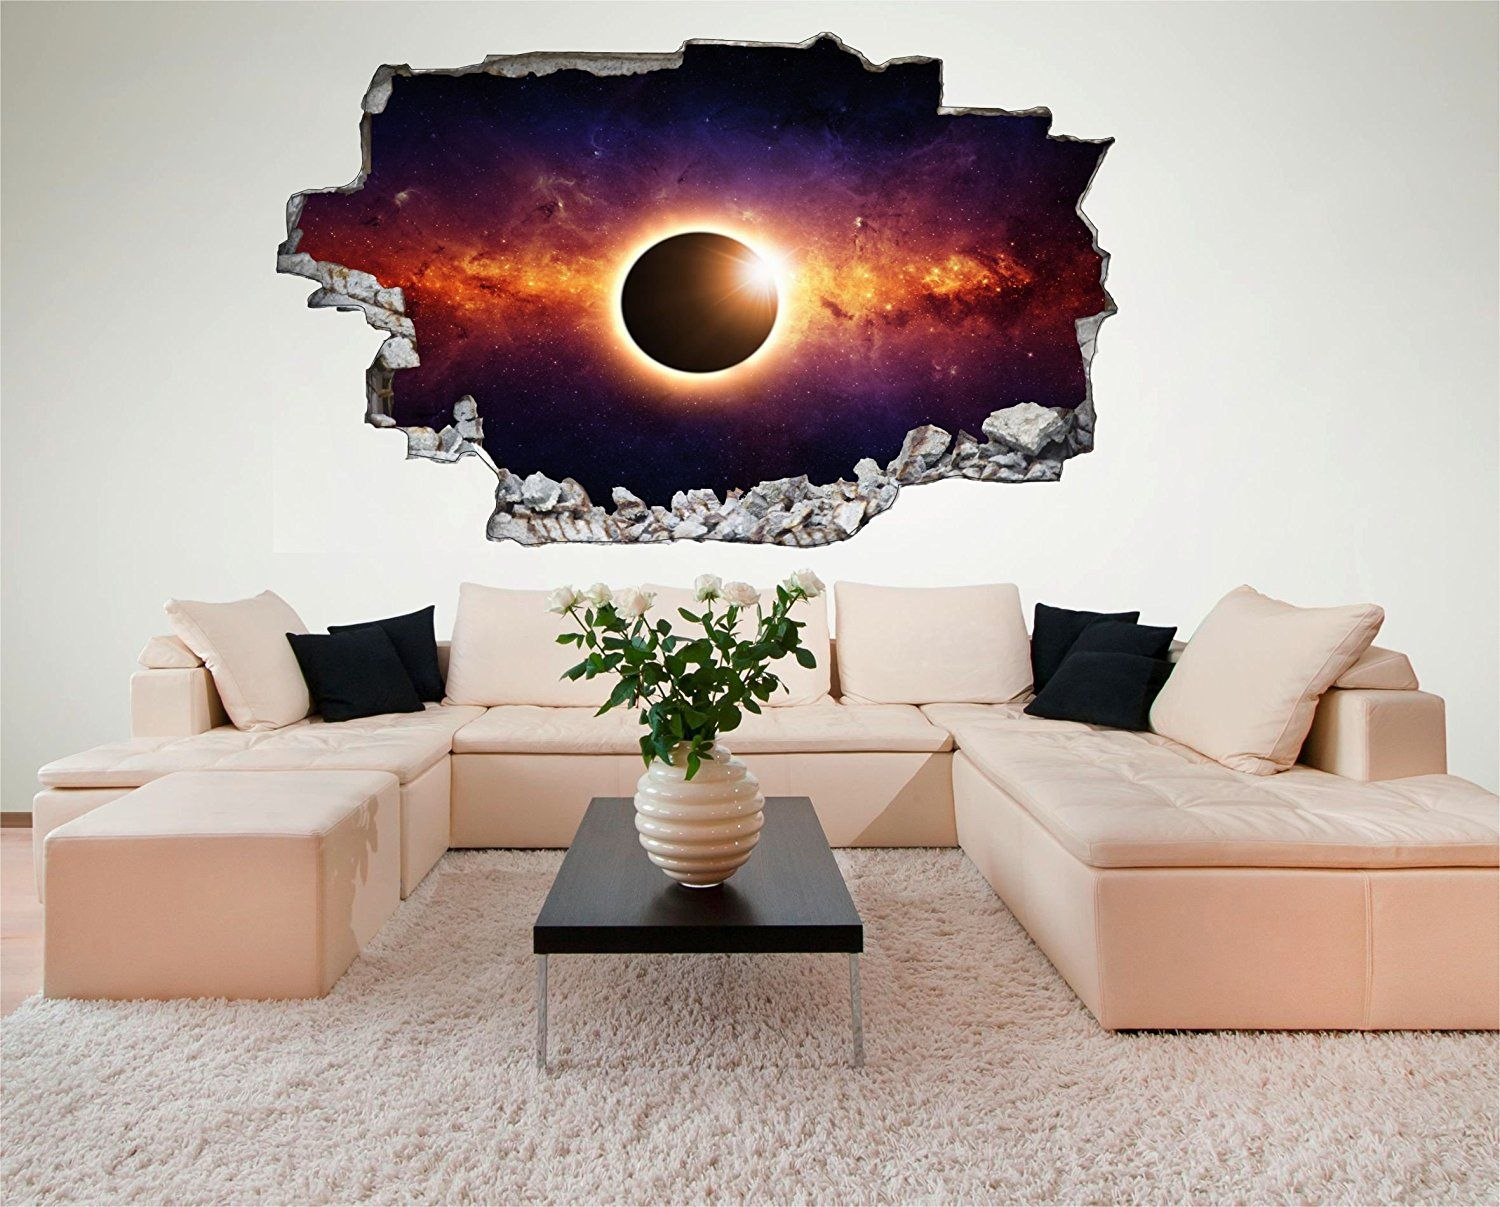 cooles wandtattoo mit 3d effekt weltraum kinderzimmer sonne weltraum erde space weltall. Black Bedroom Furniture Sets. Home Design Ideas